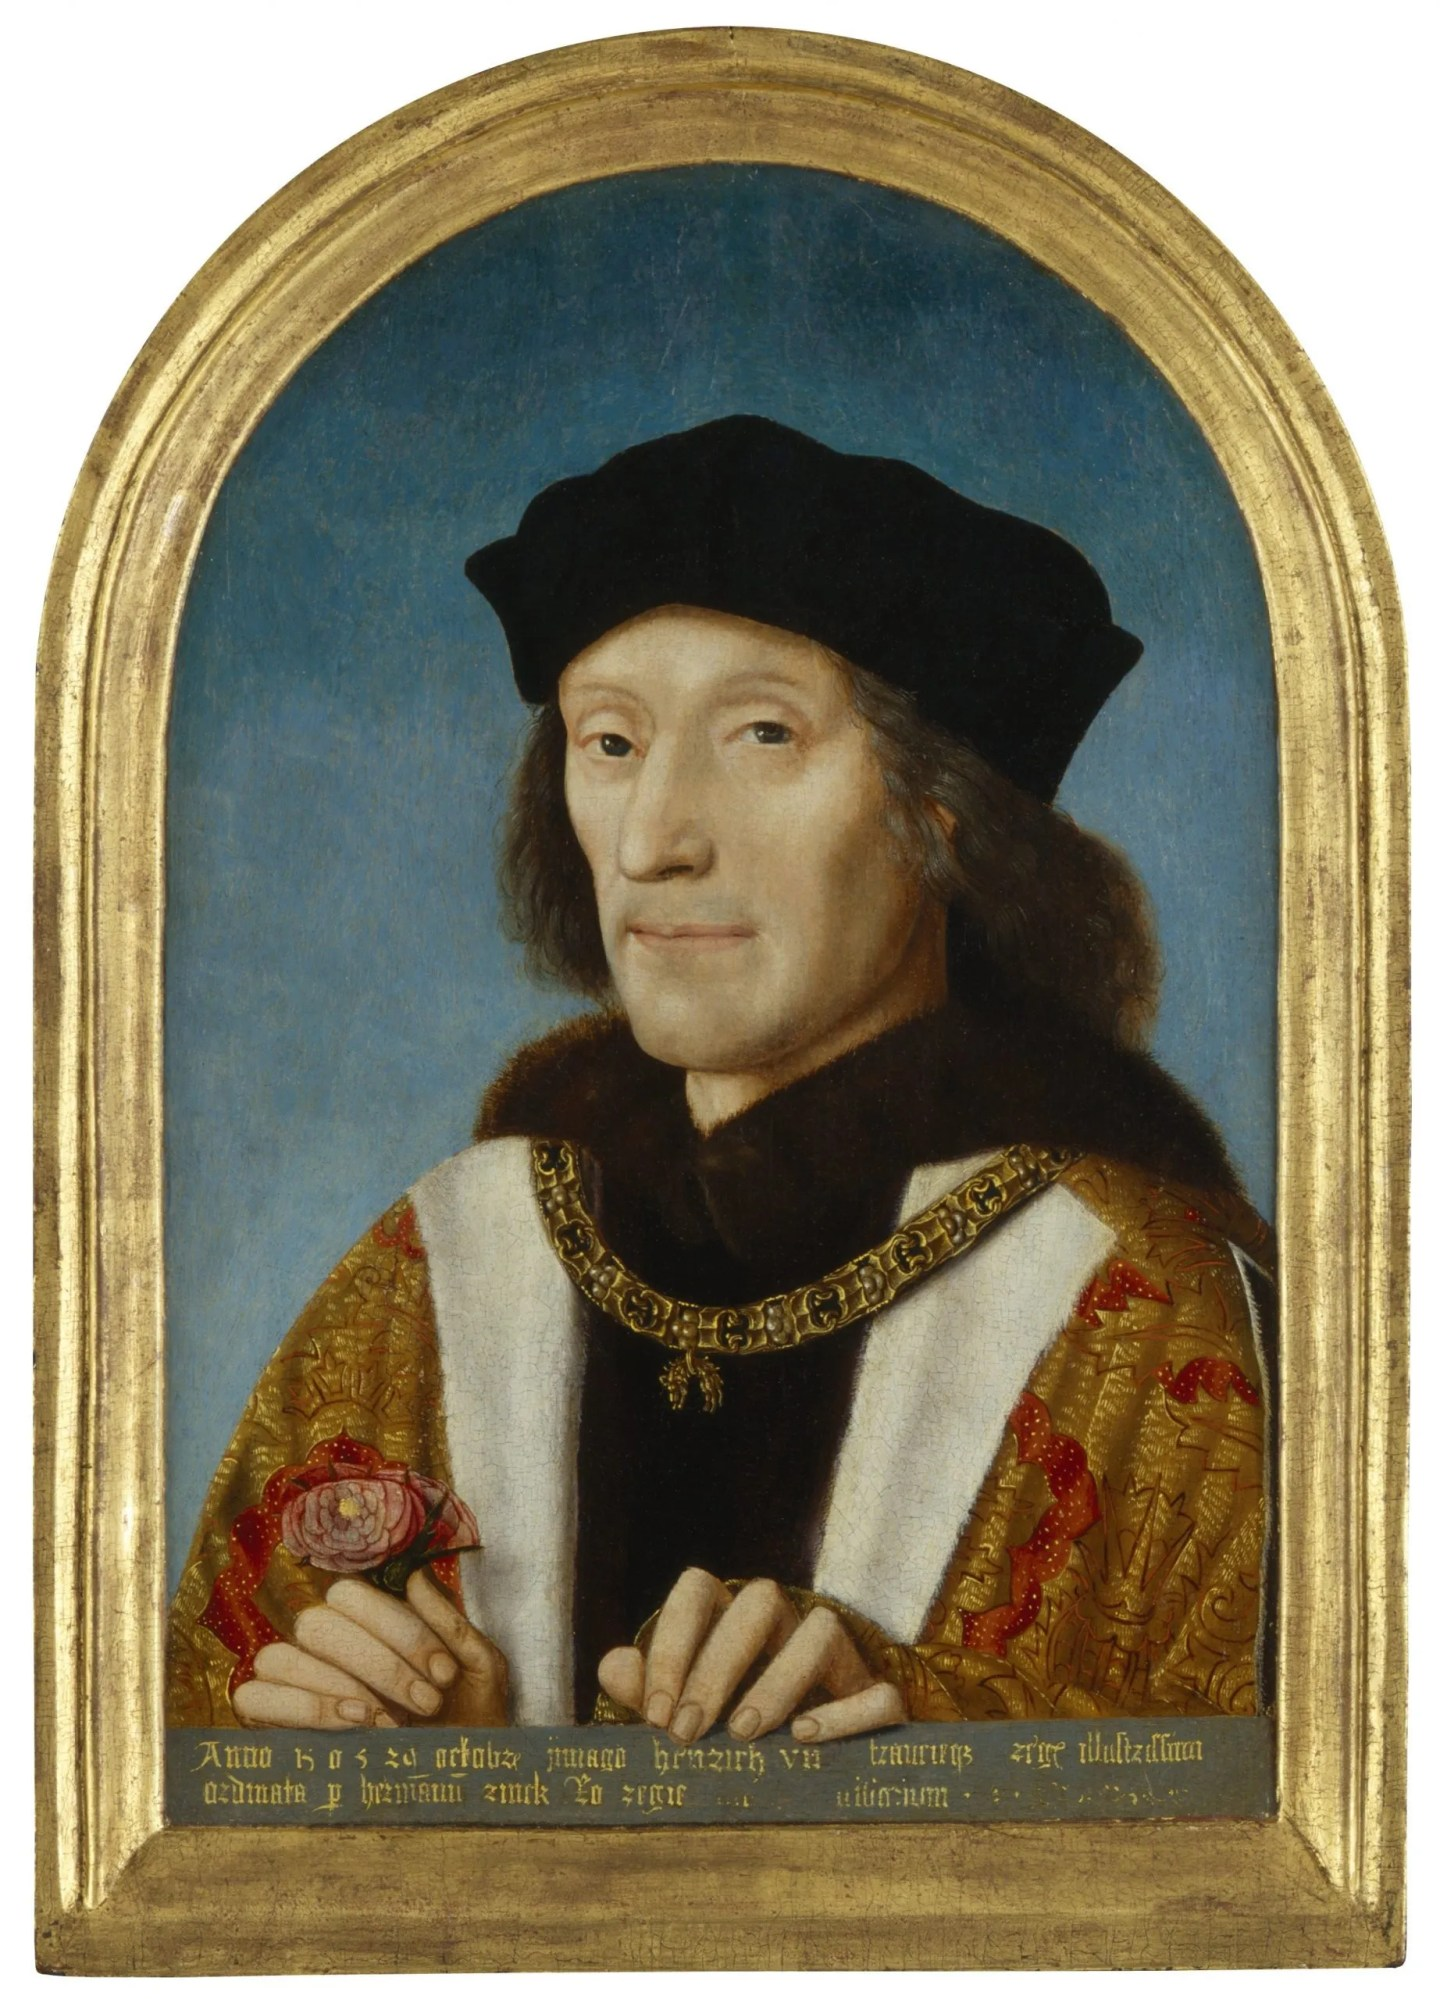 THE REAL TUDORS: KINGS AND QUEENS REDISCOVERED at the NATIONAL PORTRAIT GALLERY